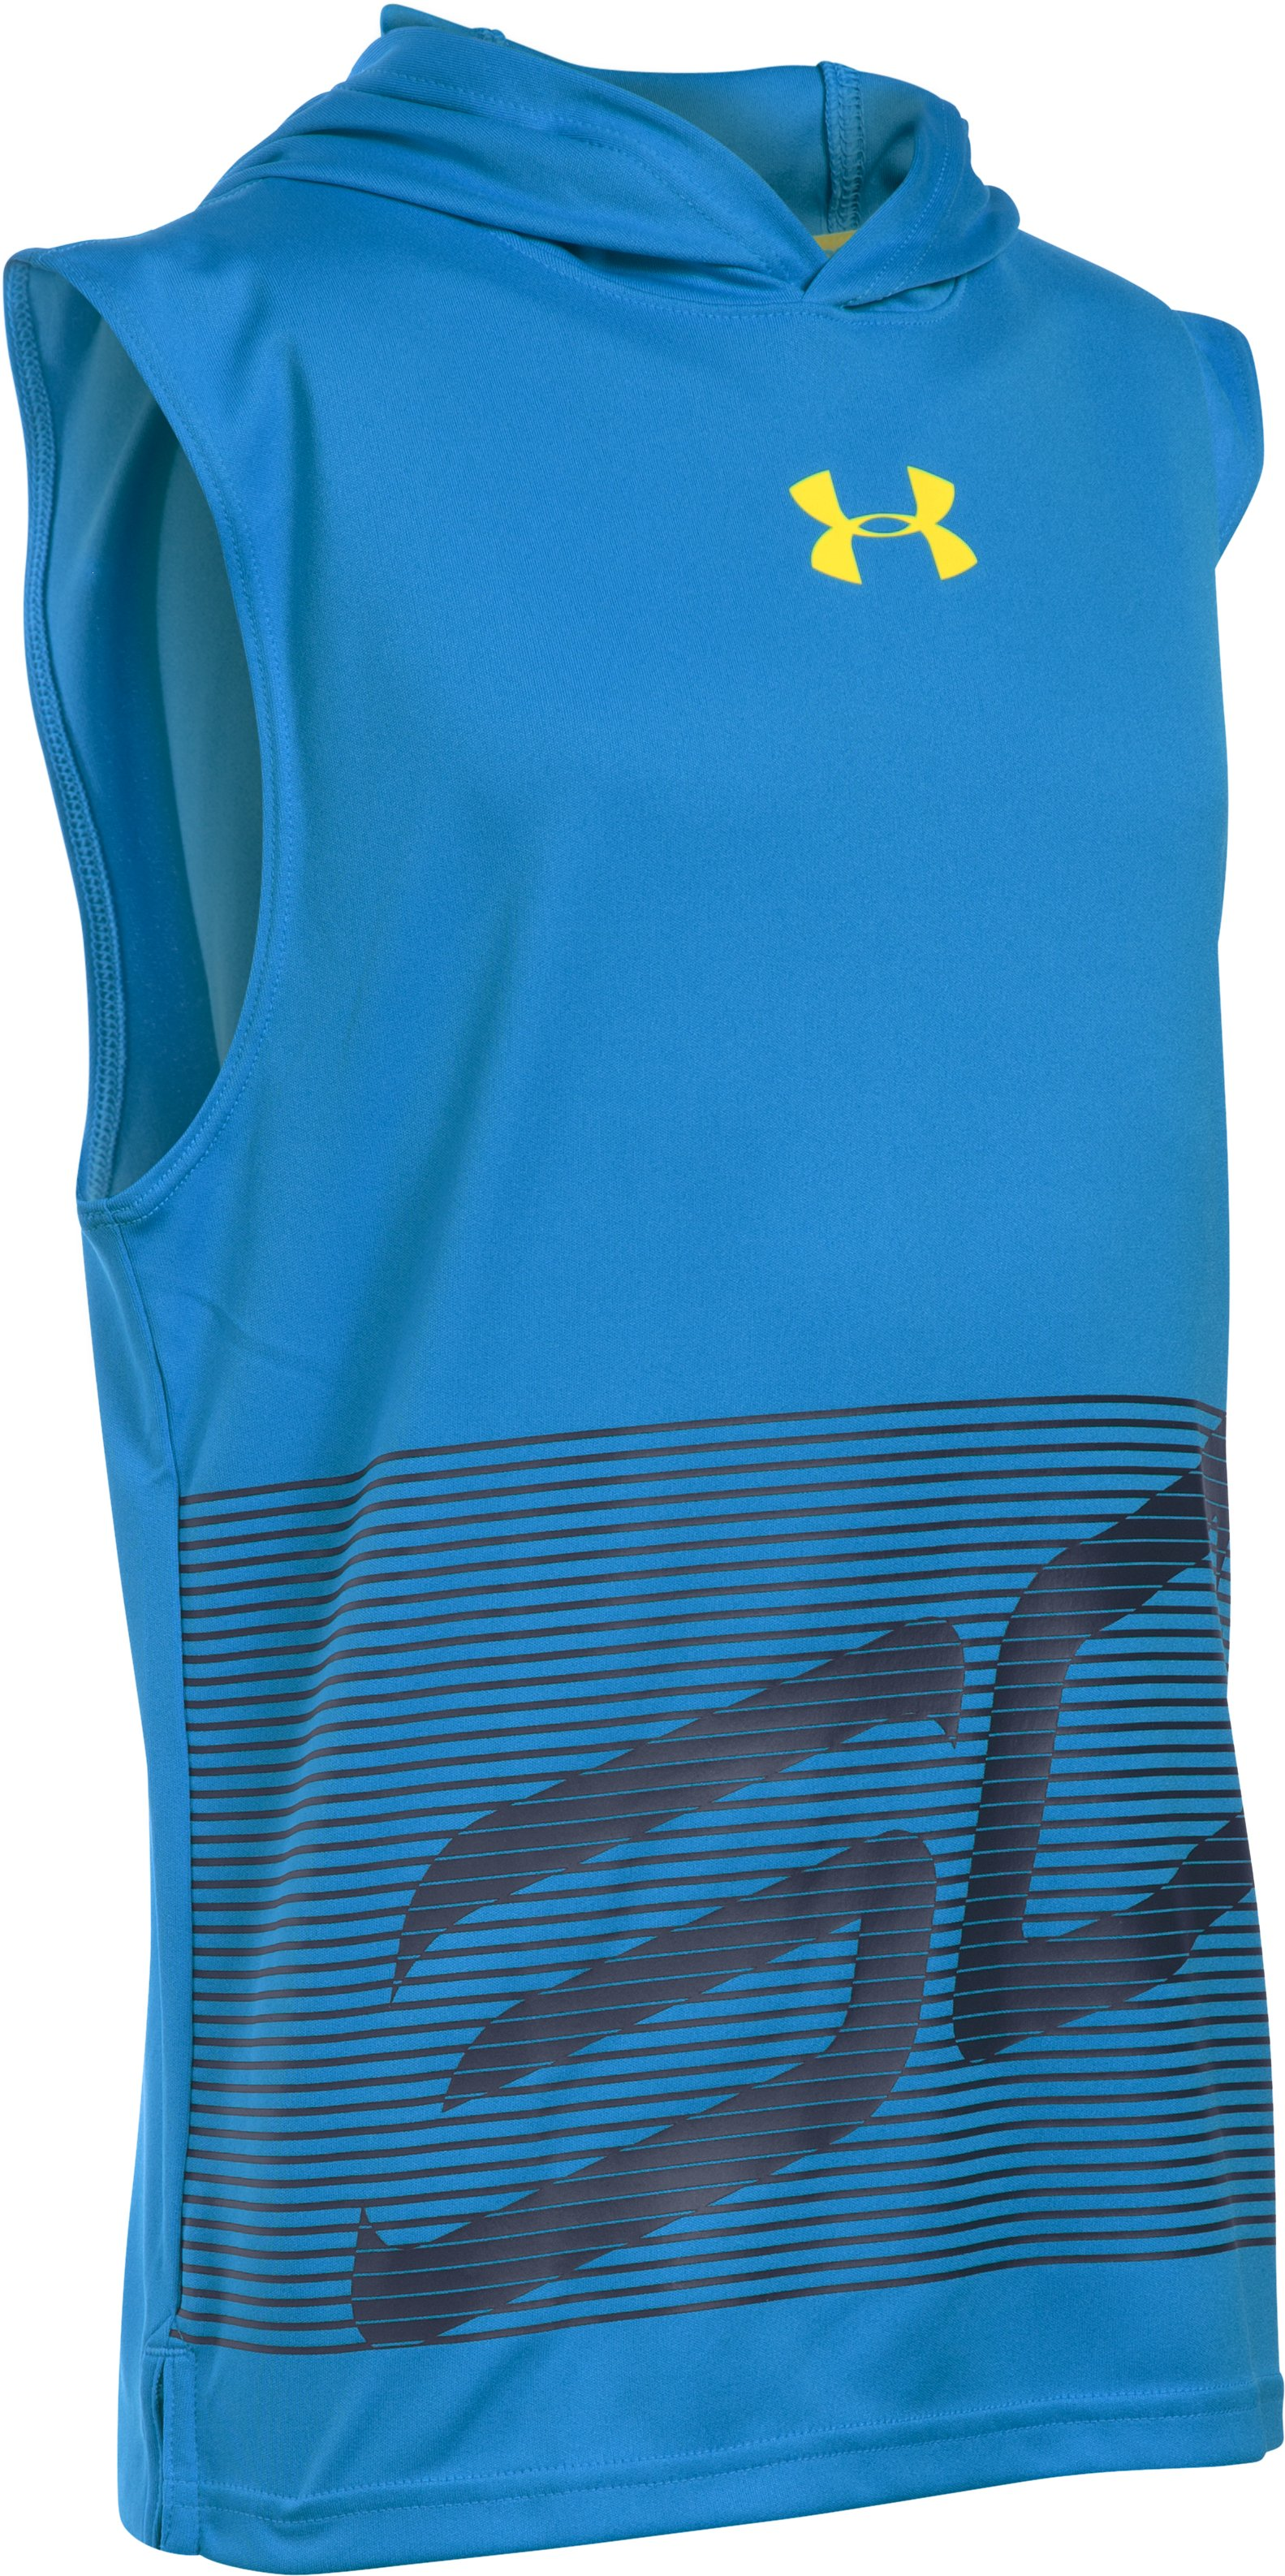 Boys' SC30 Hooded Sleeveless Shirt, ELECTRIC BLUE, undefined